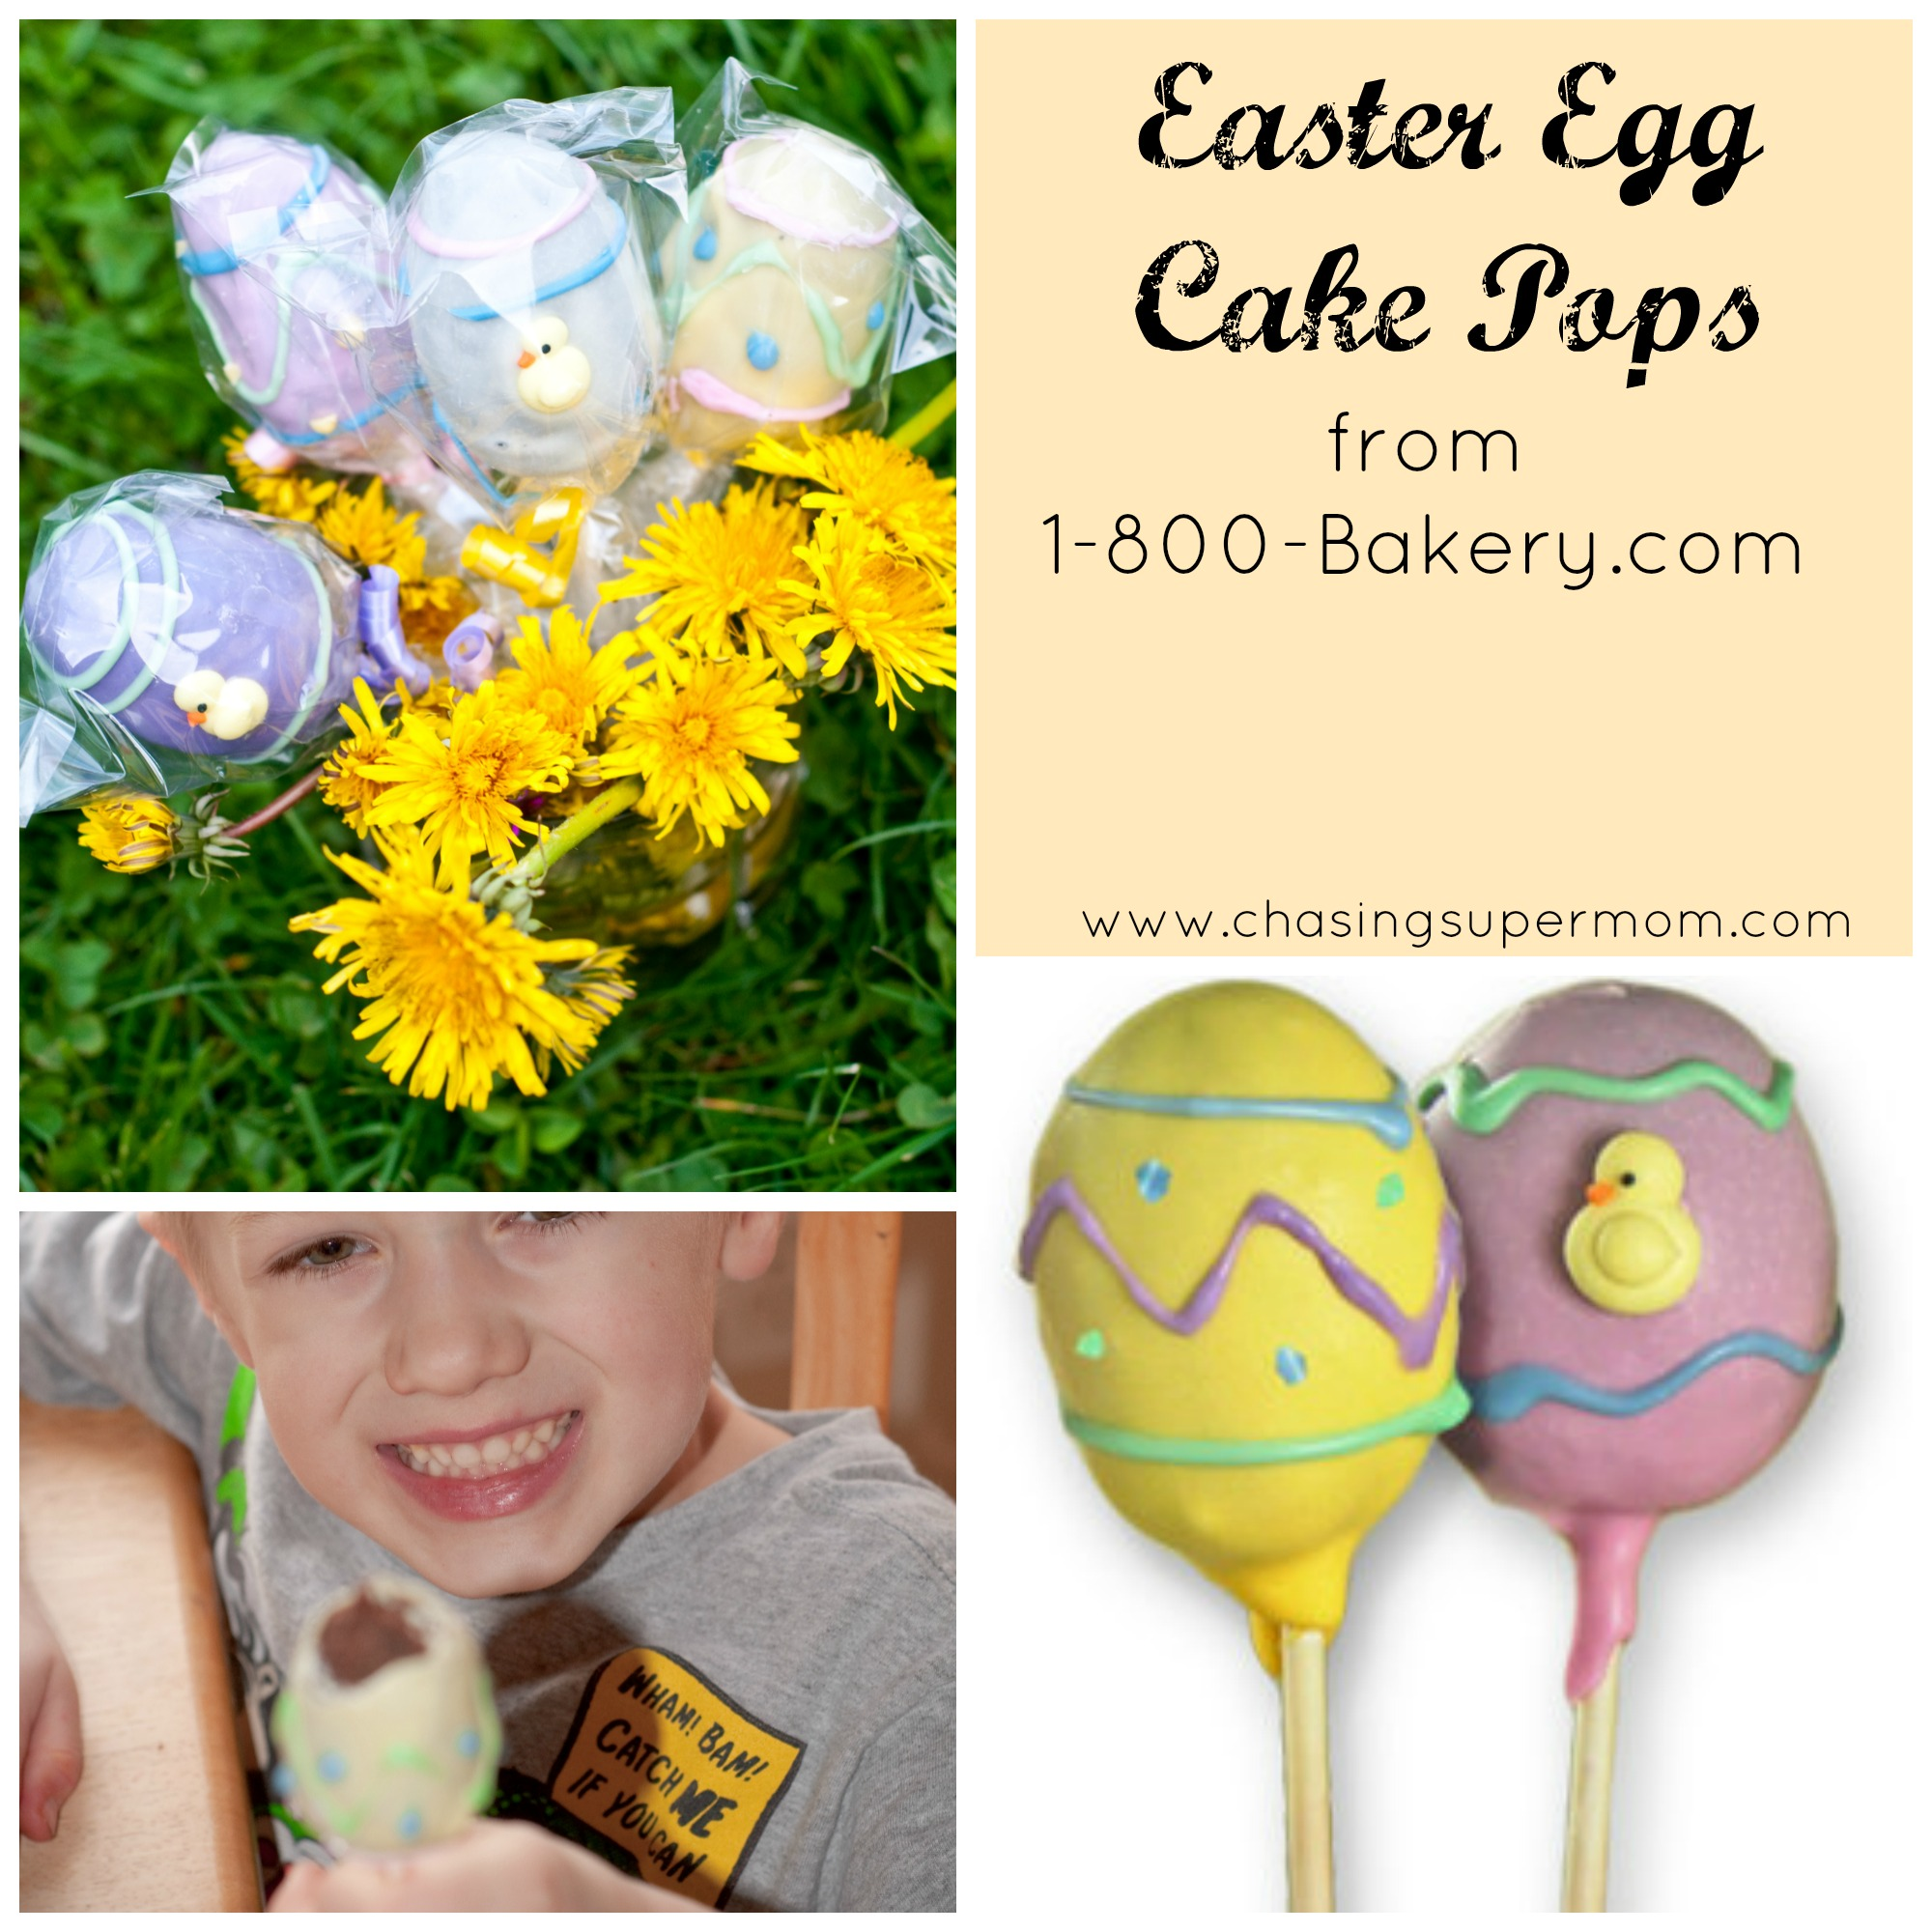 Easter Egg Cake Pops from 1-800-Bakery.com – Review